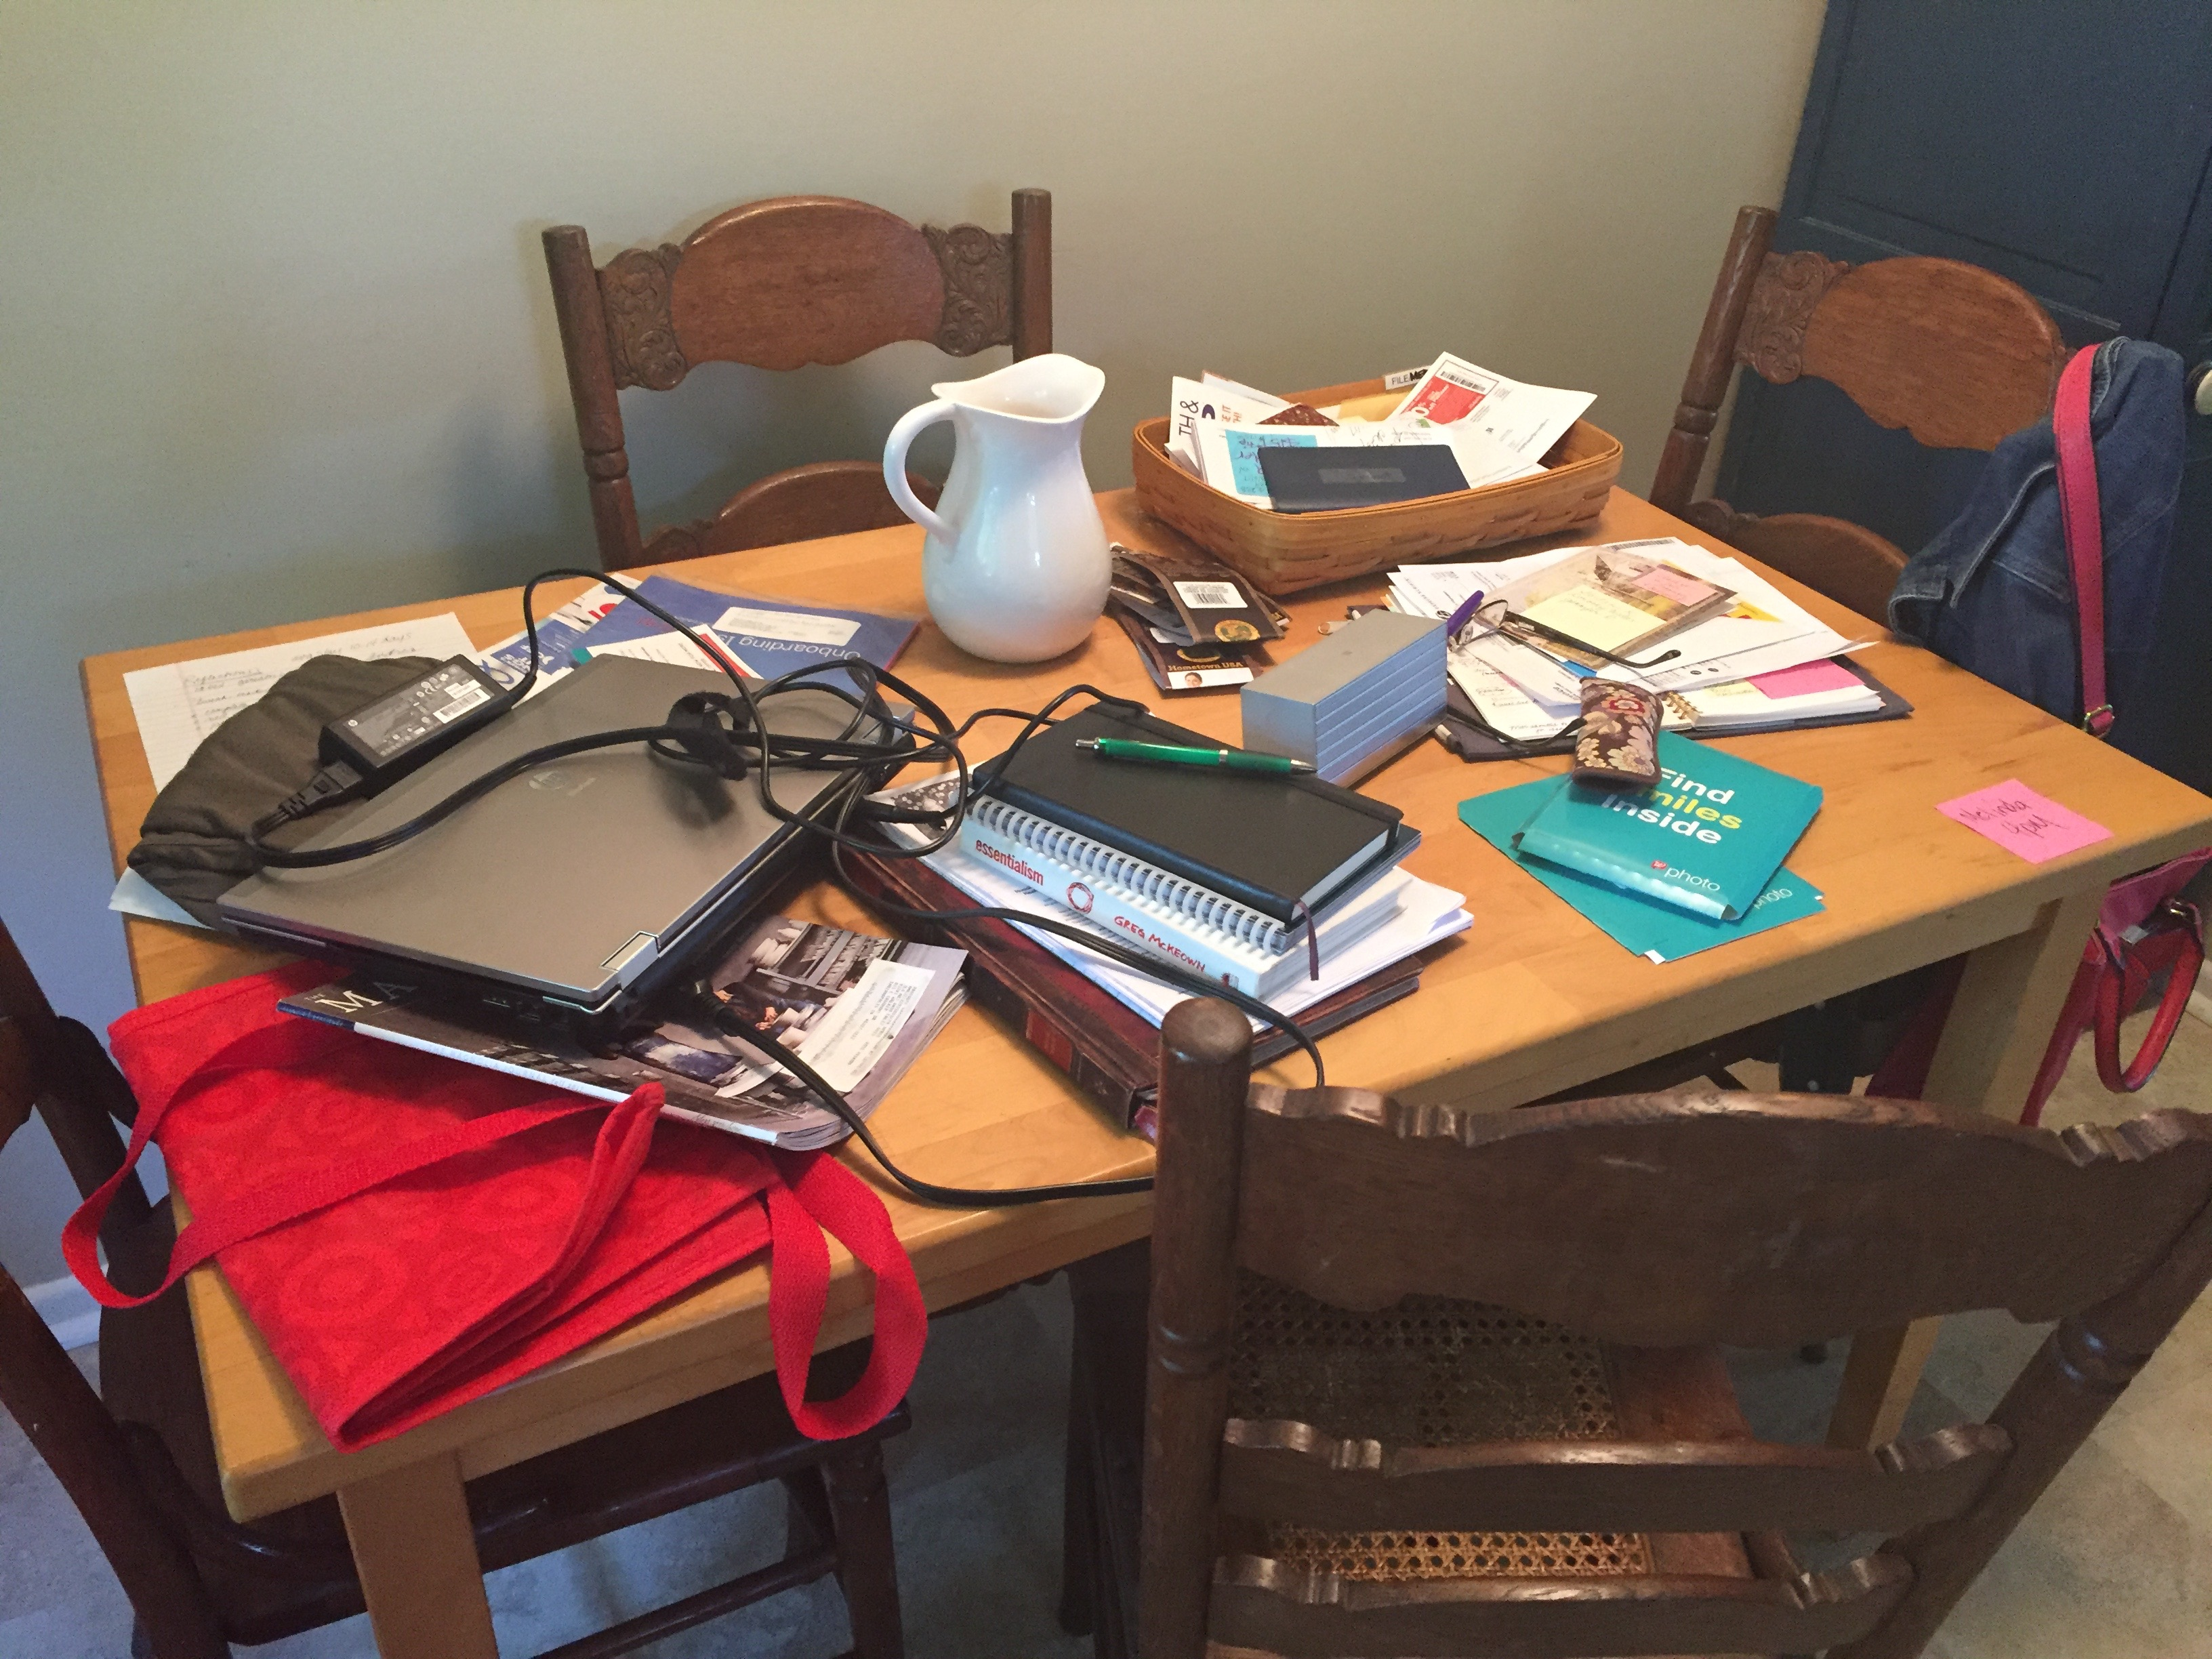 image of cluttered tabletop